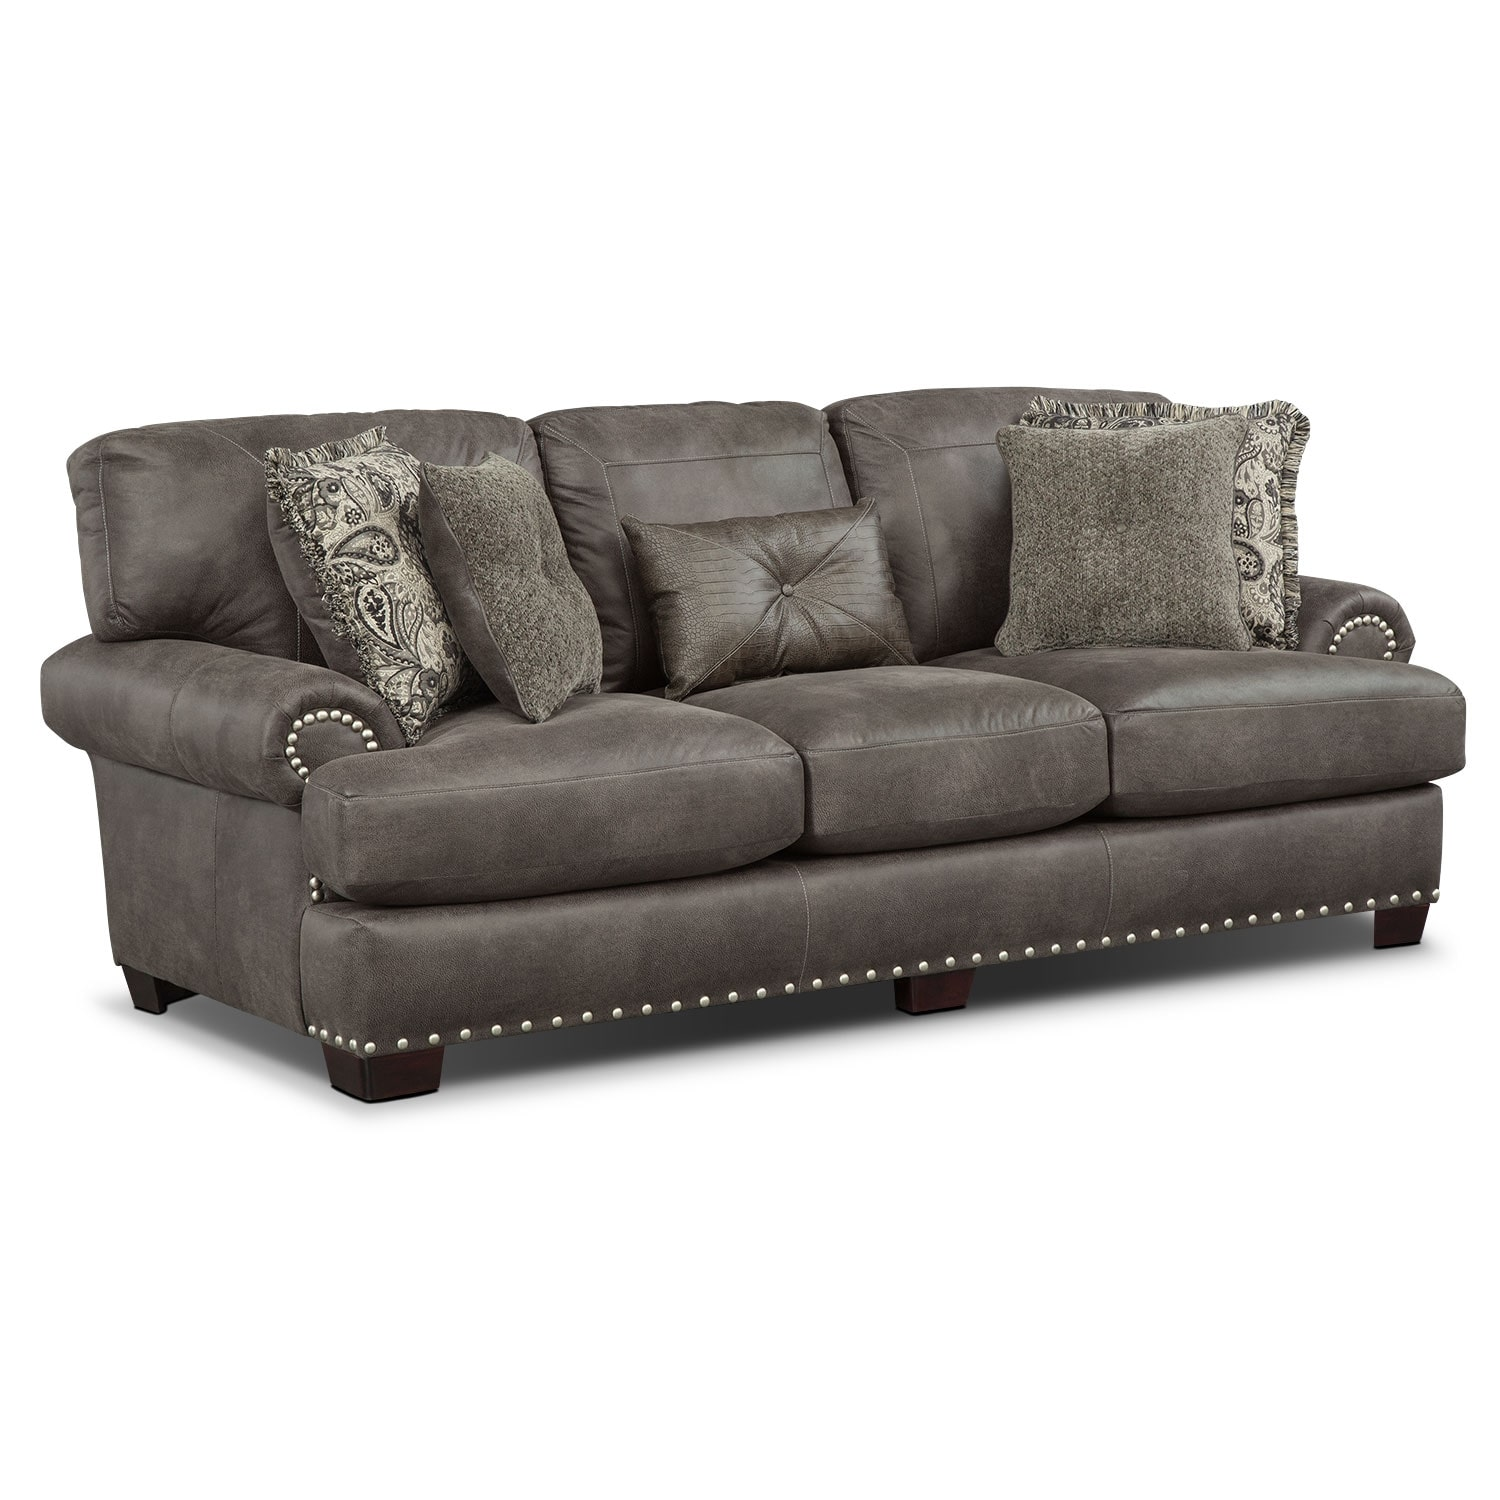 Living Room Furniture - Burlington Sofa - Steel